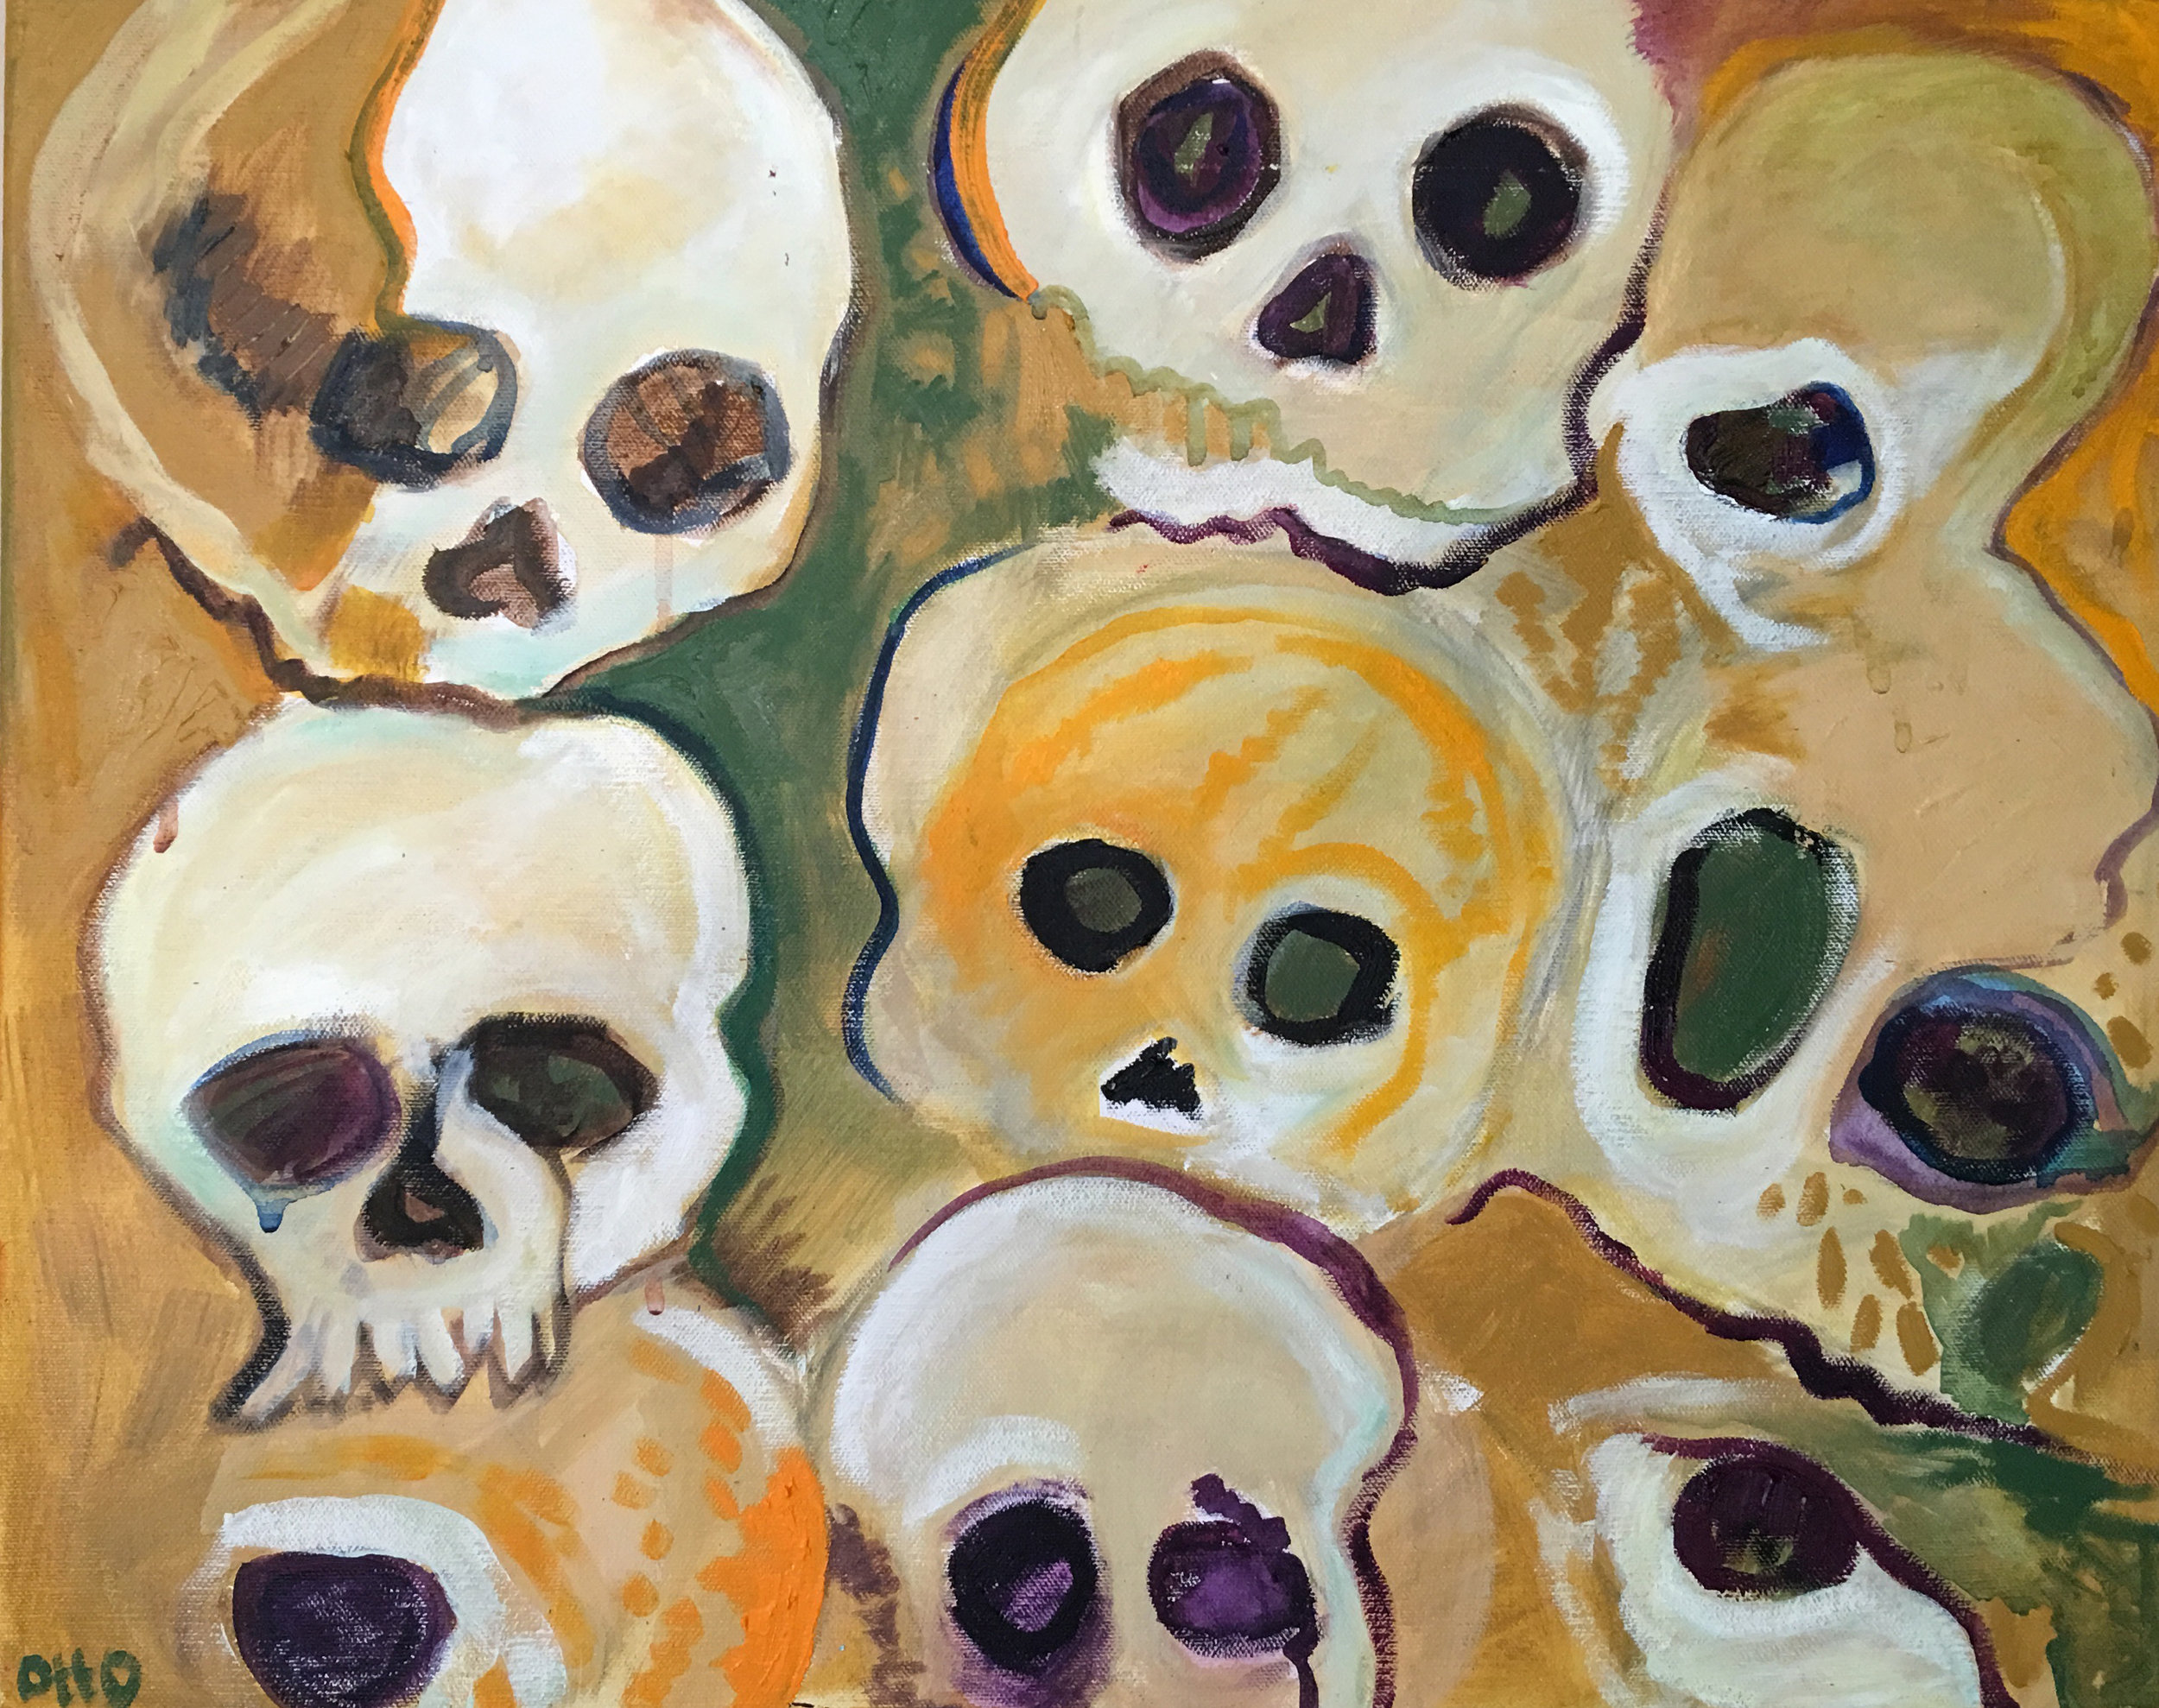 Skull Party (50x50cm) - Was £100 -  Now £50